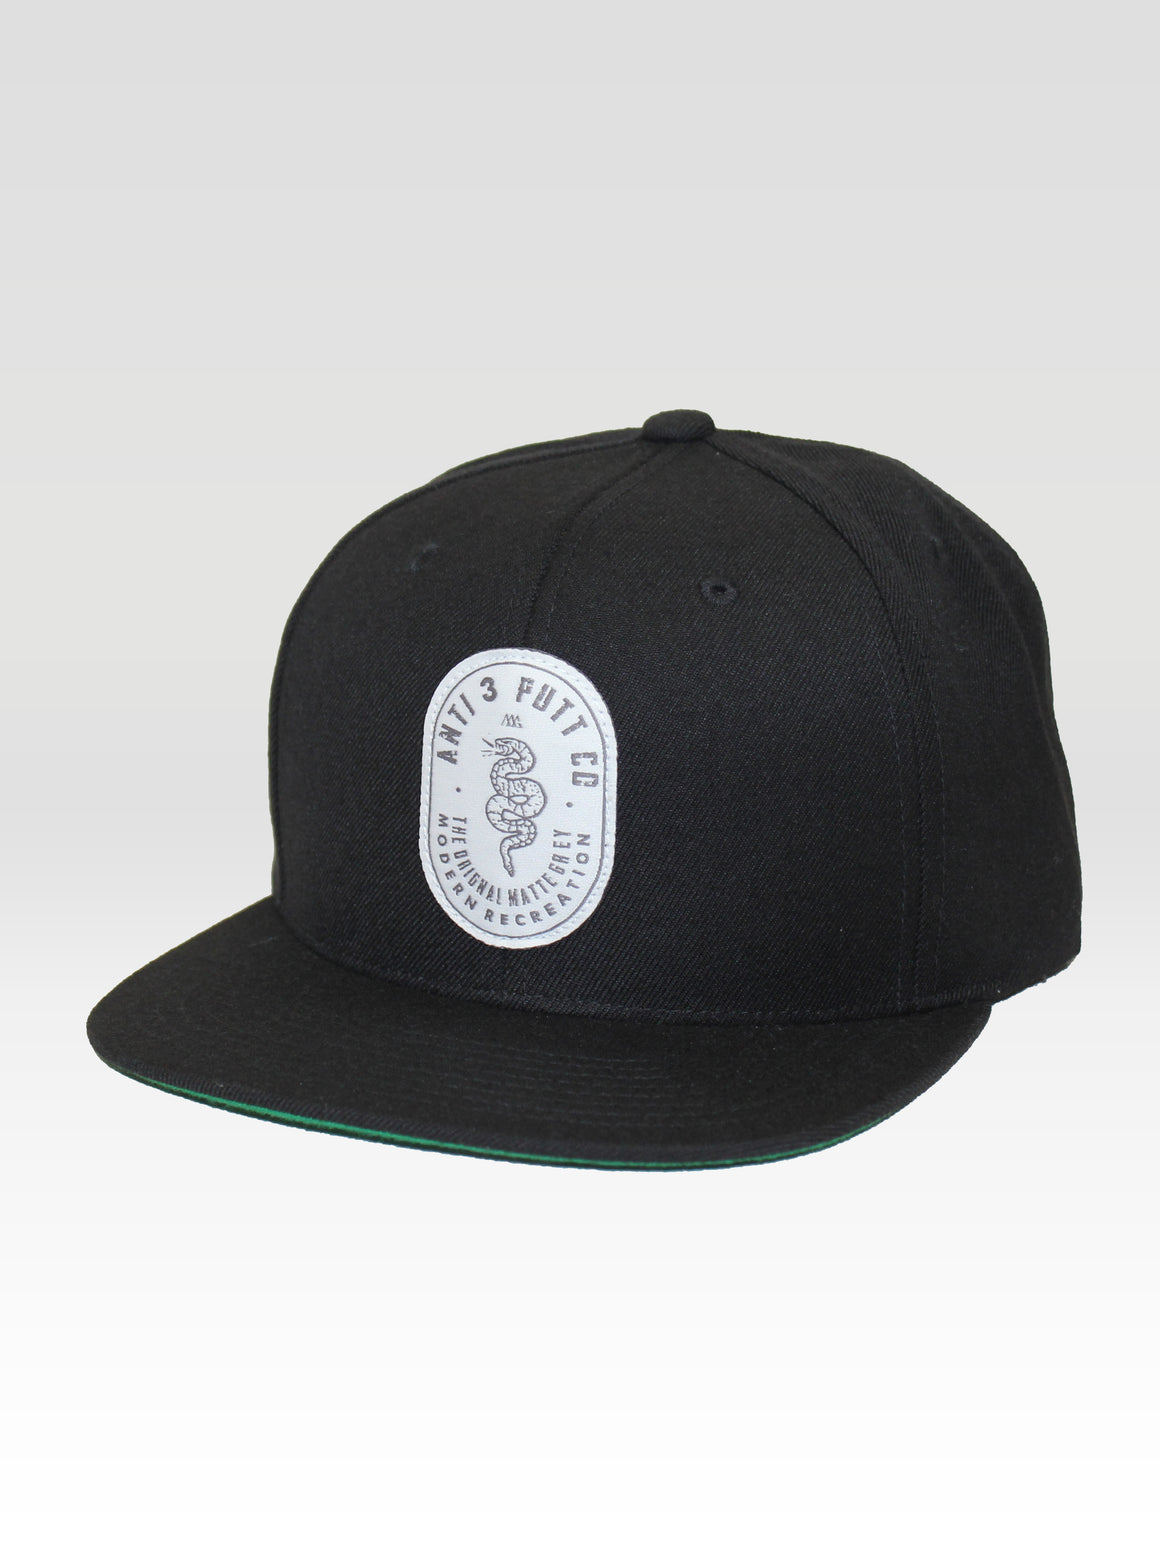 Anti 3 Putt Snapback - Black (White / Grey)